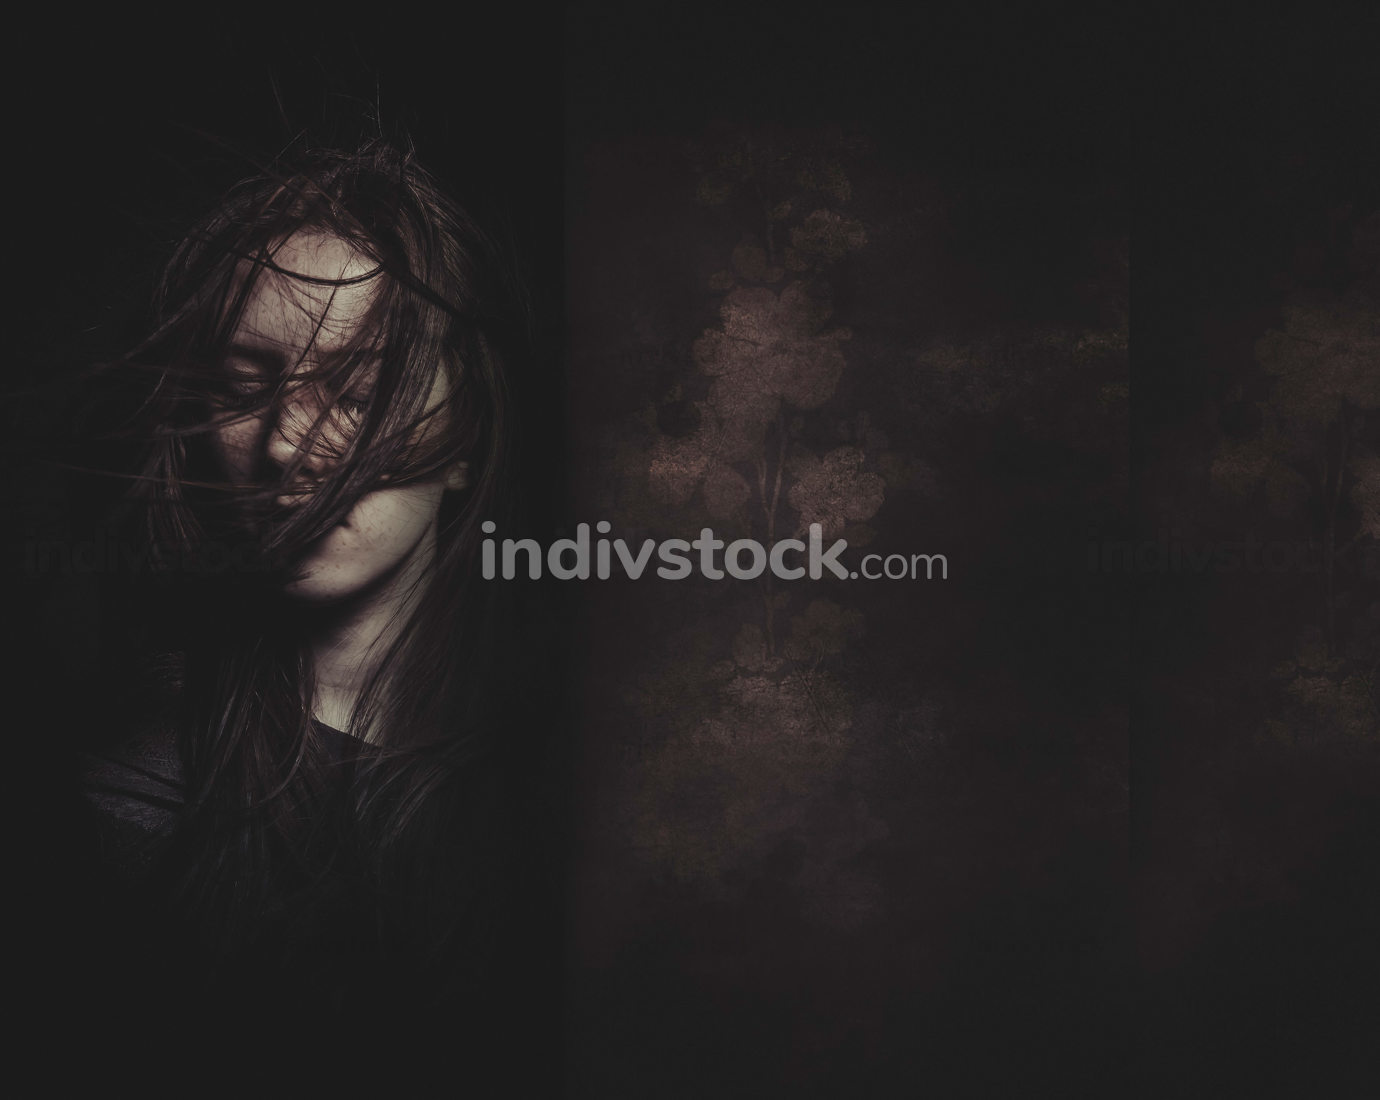 A tender portrait of a dreamy girl with eyes closed, perfect sk